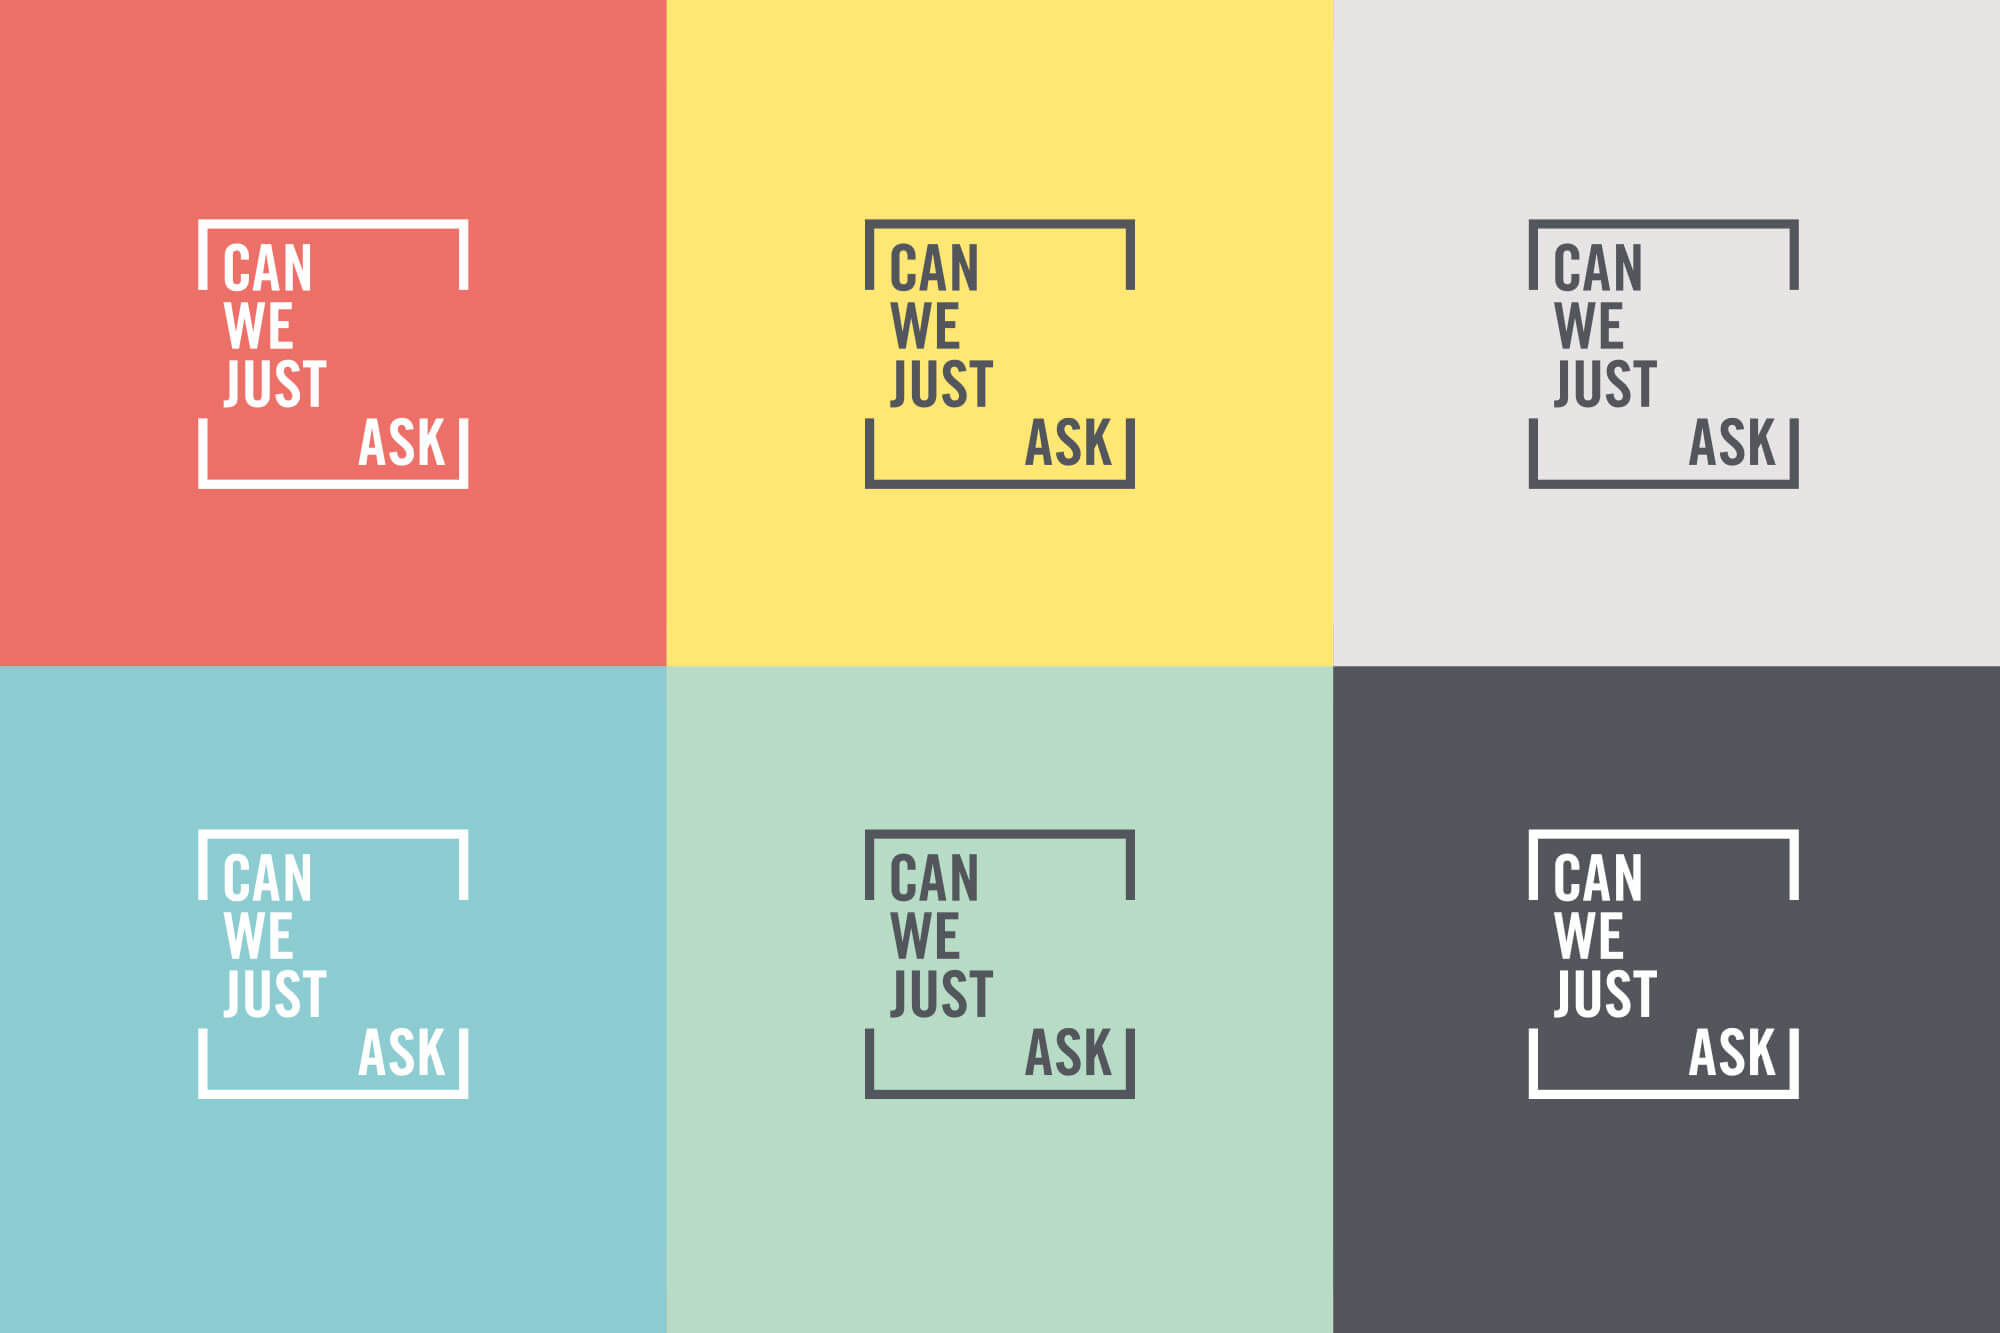 gpj-design-can-we-just-ask-brand-identity-cs-04